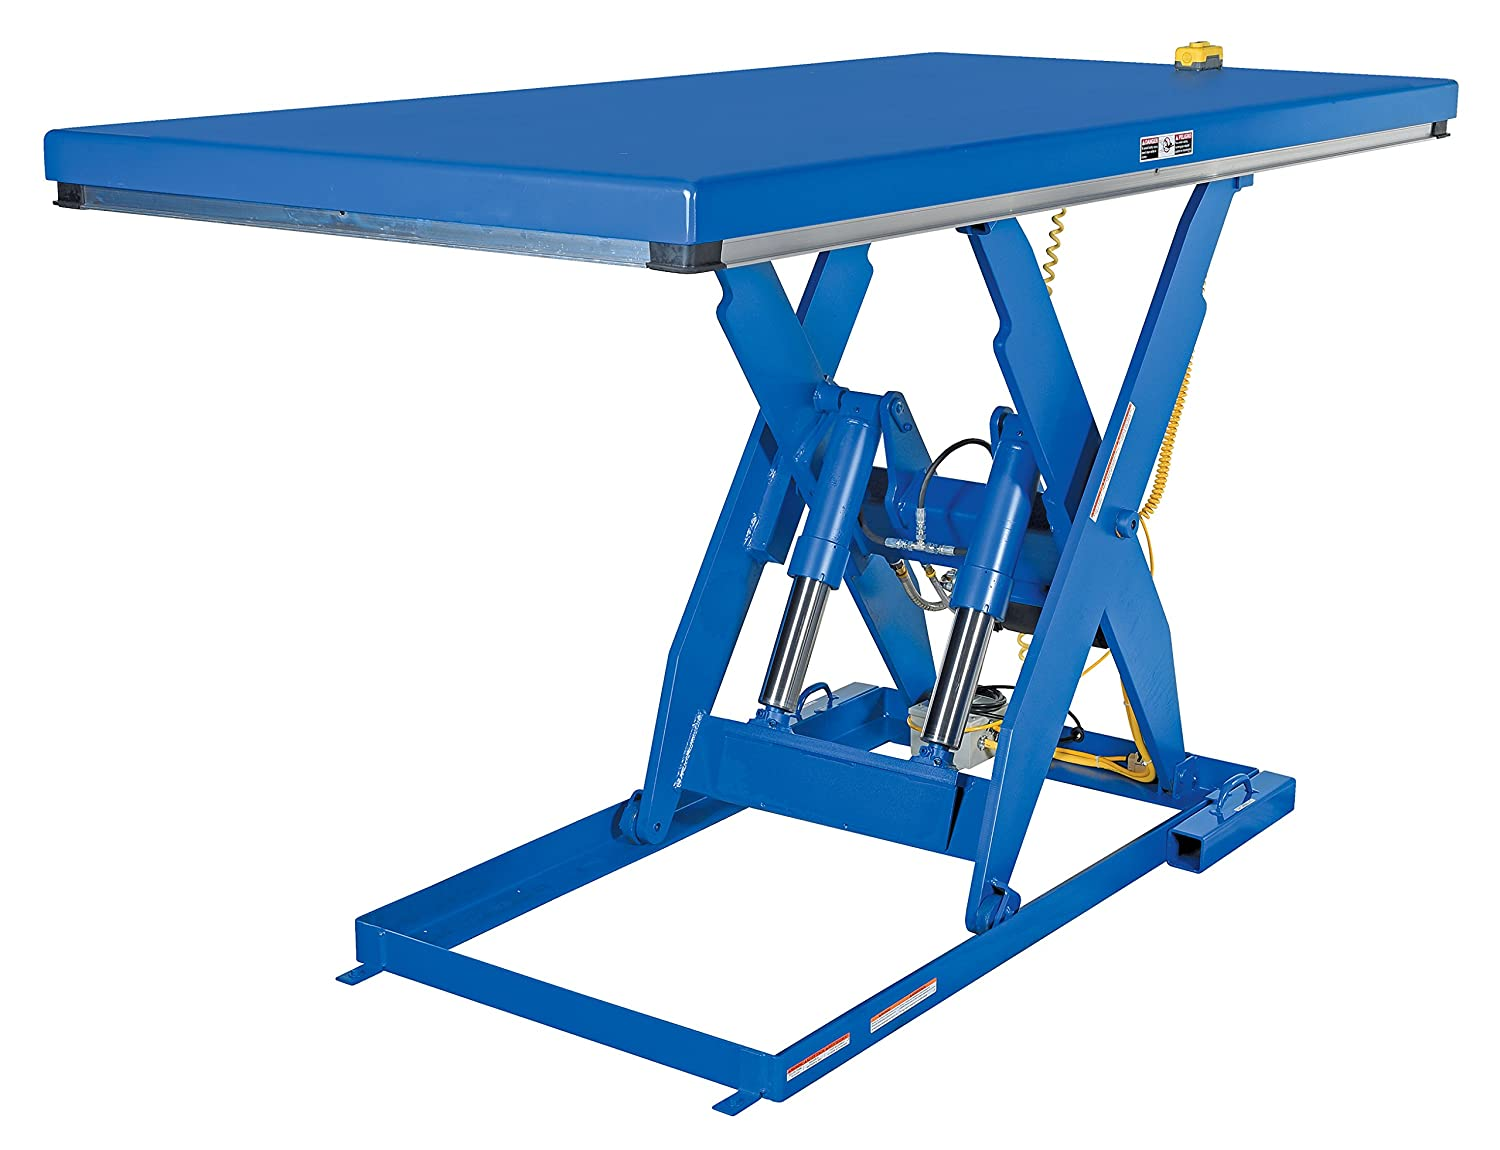 Vestil EHLT-4896-4-56 Electric Hydraulic Lift Table, 4000 lb, 8